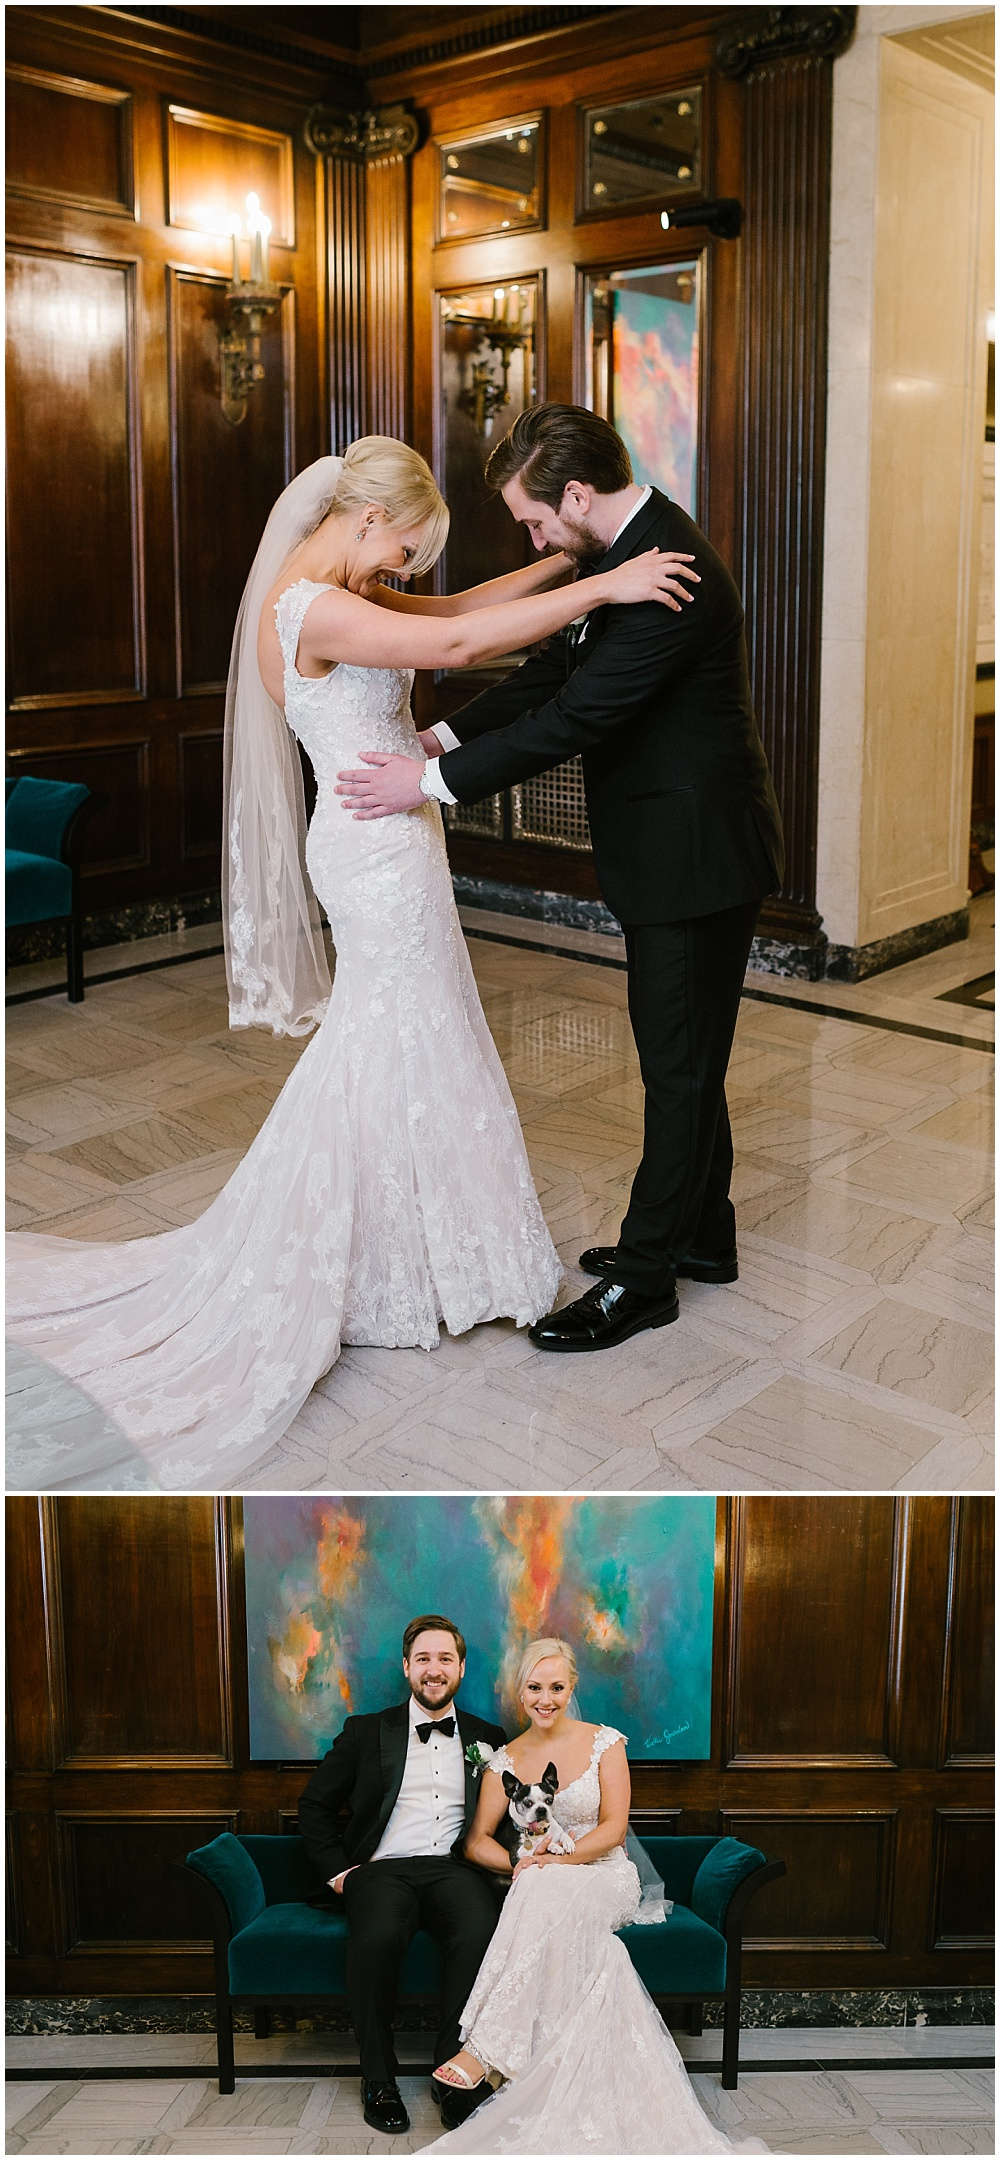 Bride and groom first look with their dog | A blue and gold downtown Indianapolis spring wedding at the Grand Hall at Historic Union Station with Rebecca Shehorn Photography and Jessica Dum Wedding Coordination is on the blog today!